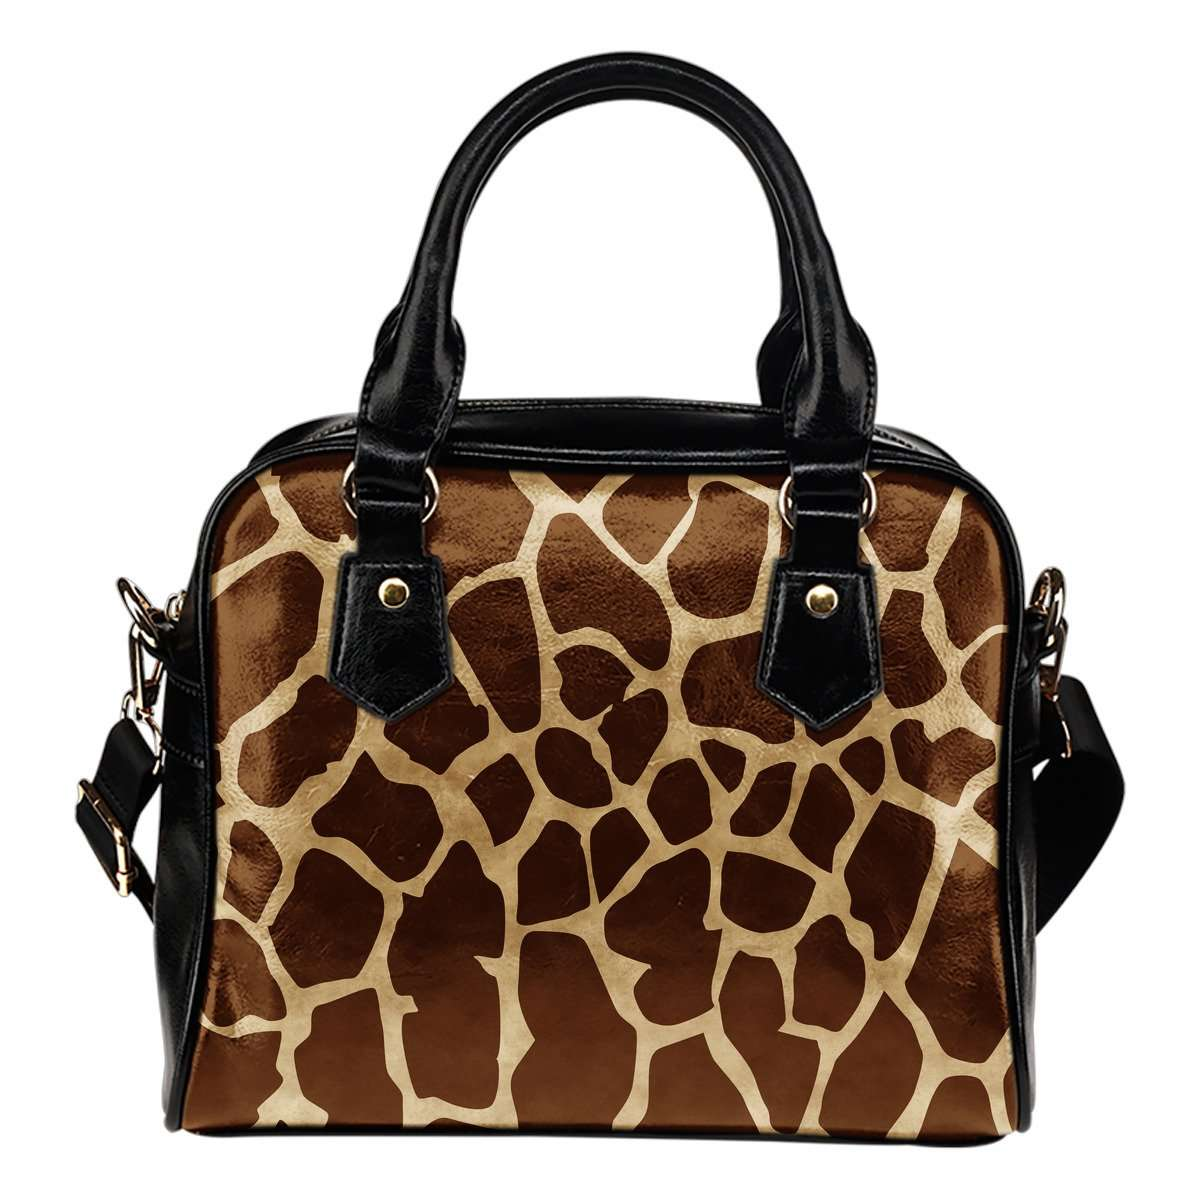 Animal Prints Giraffe Theme Women Fashion Shoulder Handbag Black Vegan Faux Leather